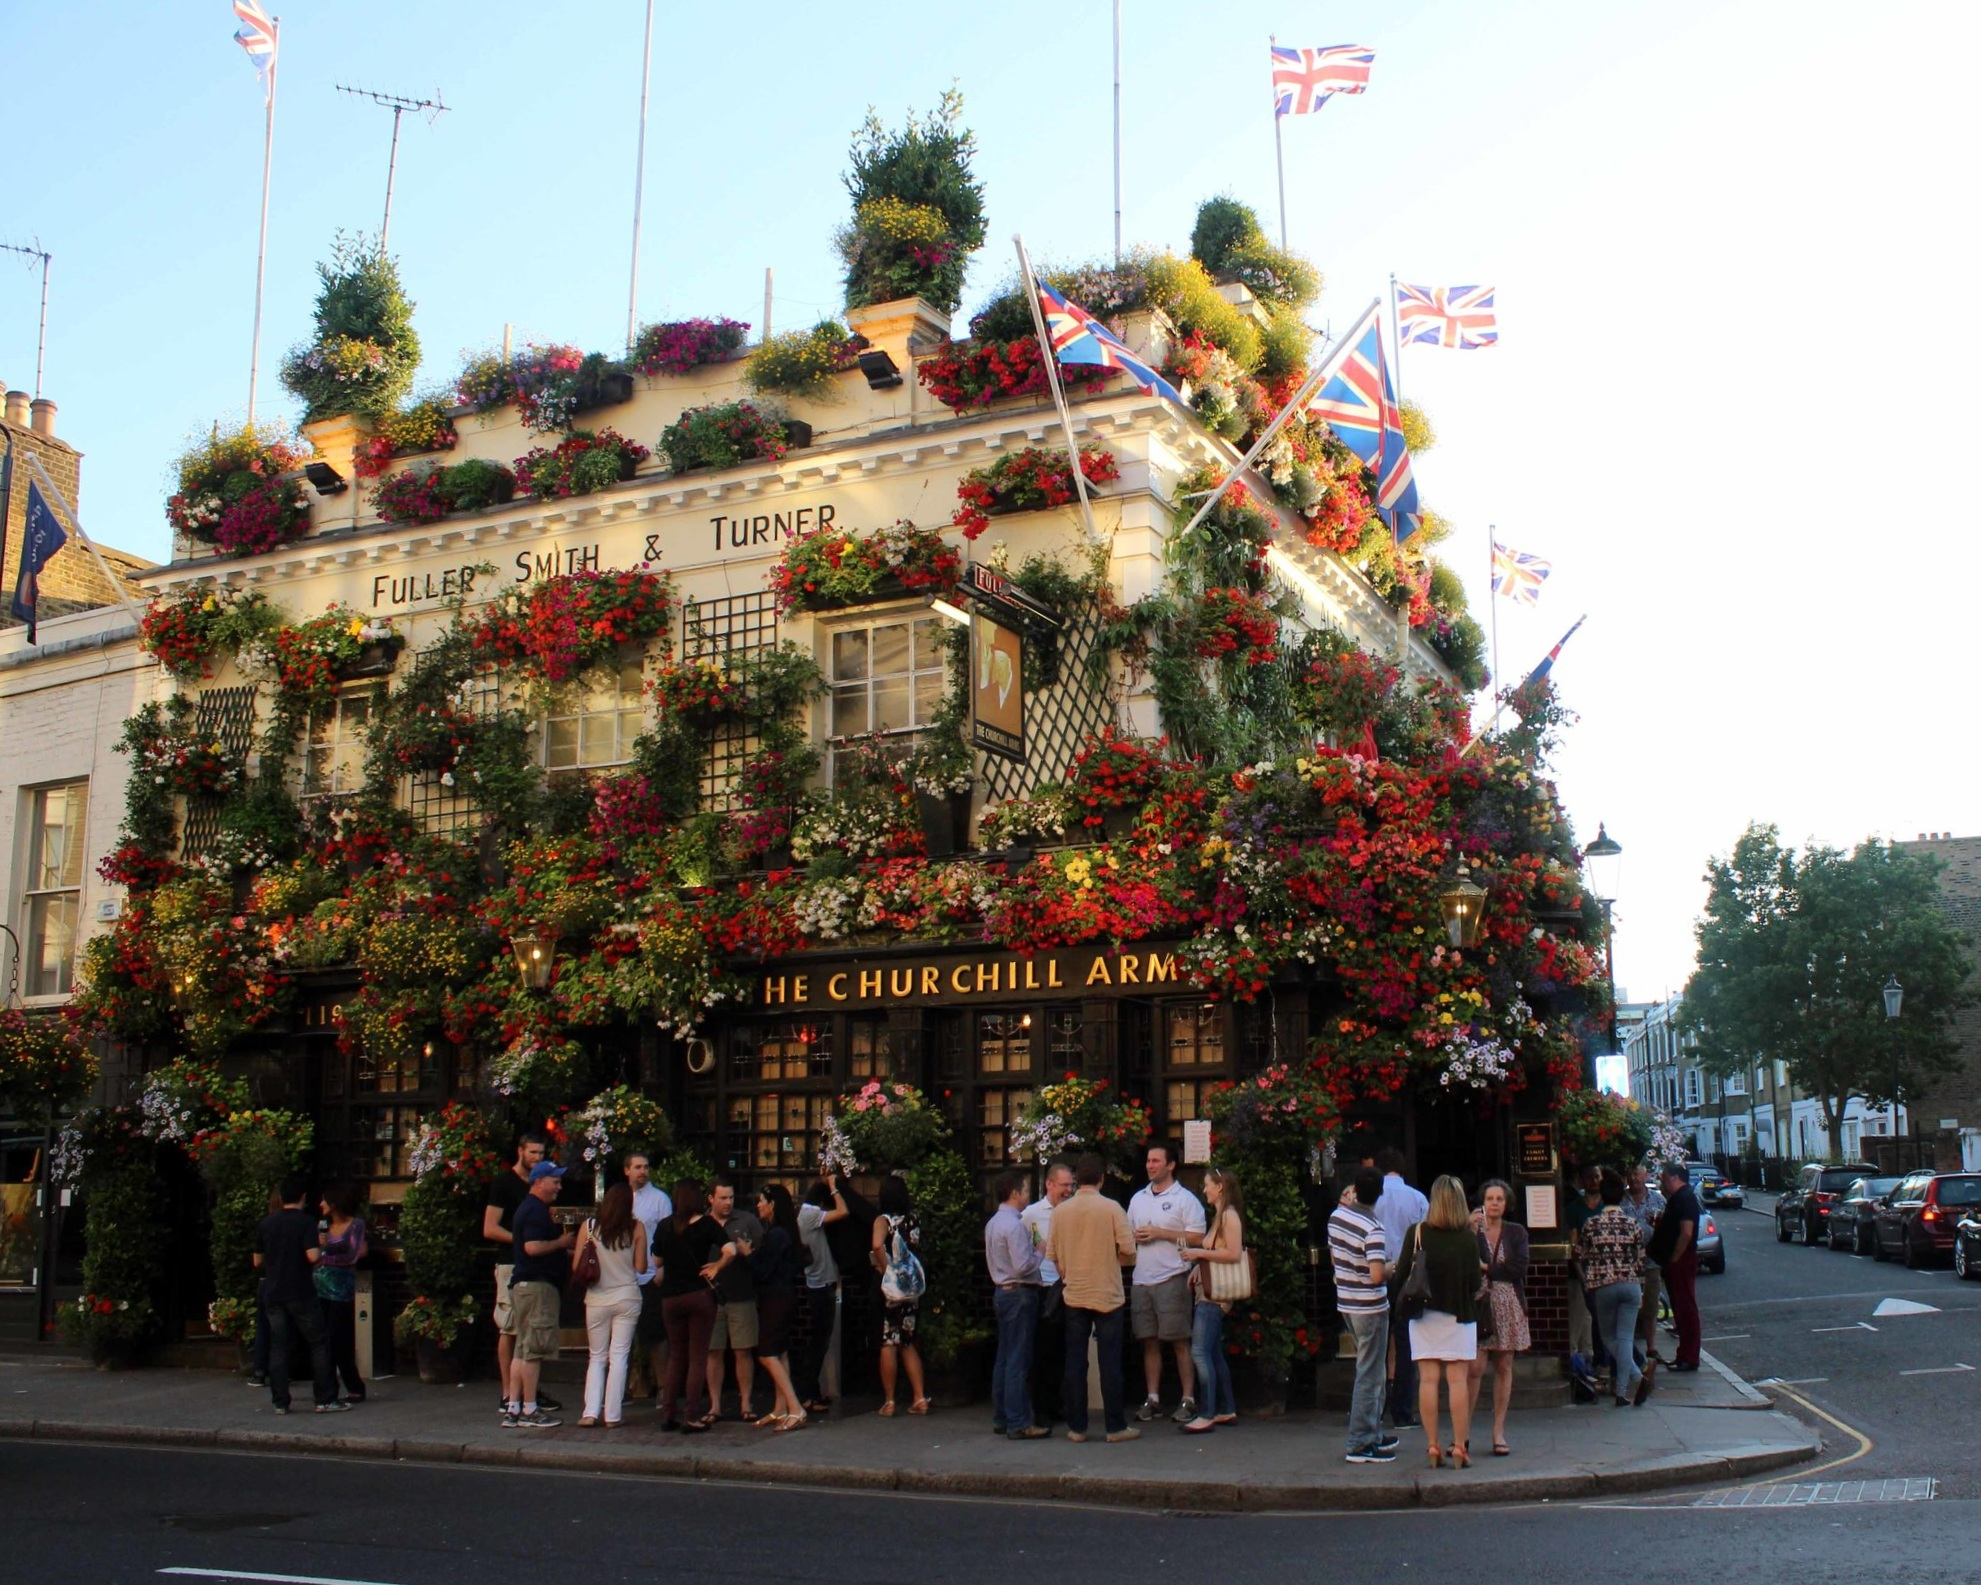 The Churchill Arns, the perfect pub to spend a day in the London sunshine